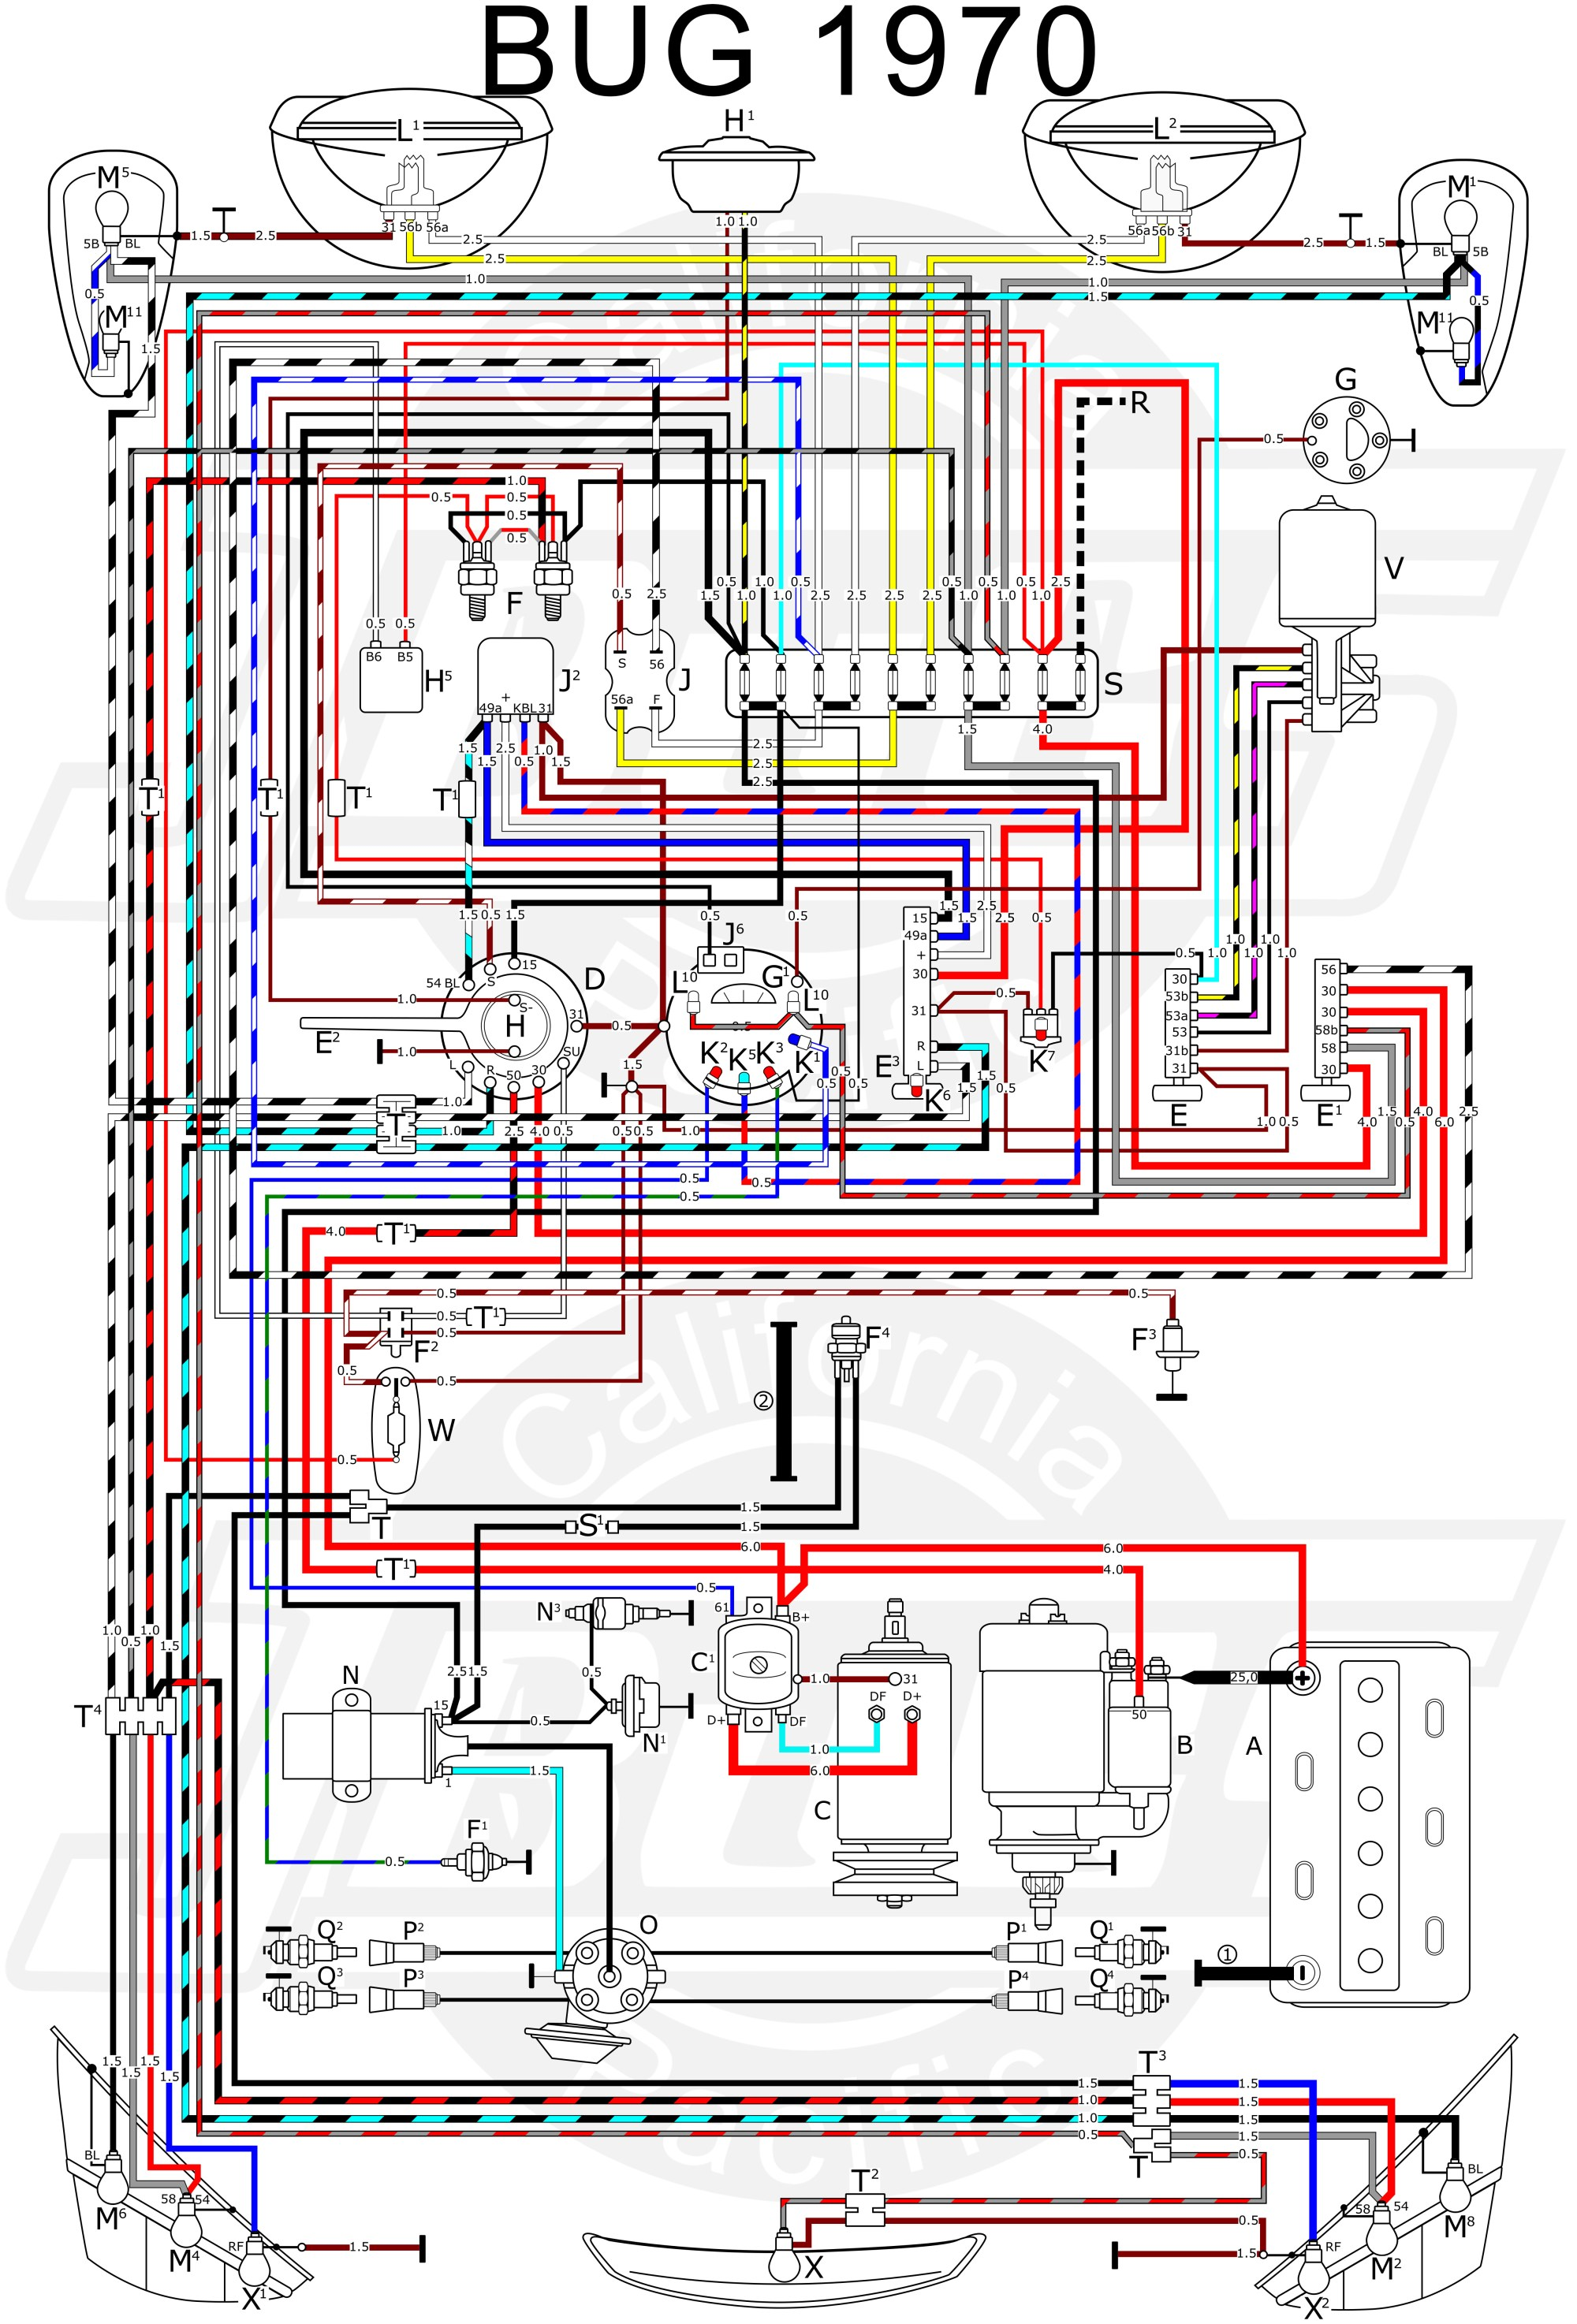 hight resolution of generator wiring diagram 1974 vw thing data wiring diagram 1974 vw generator wiring